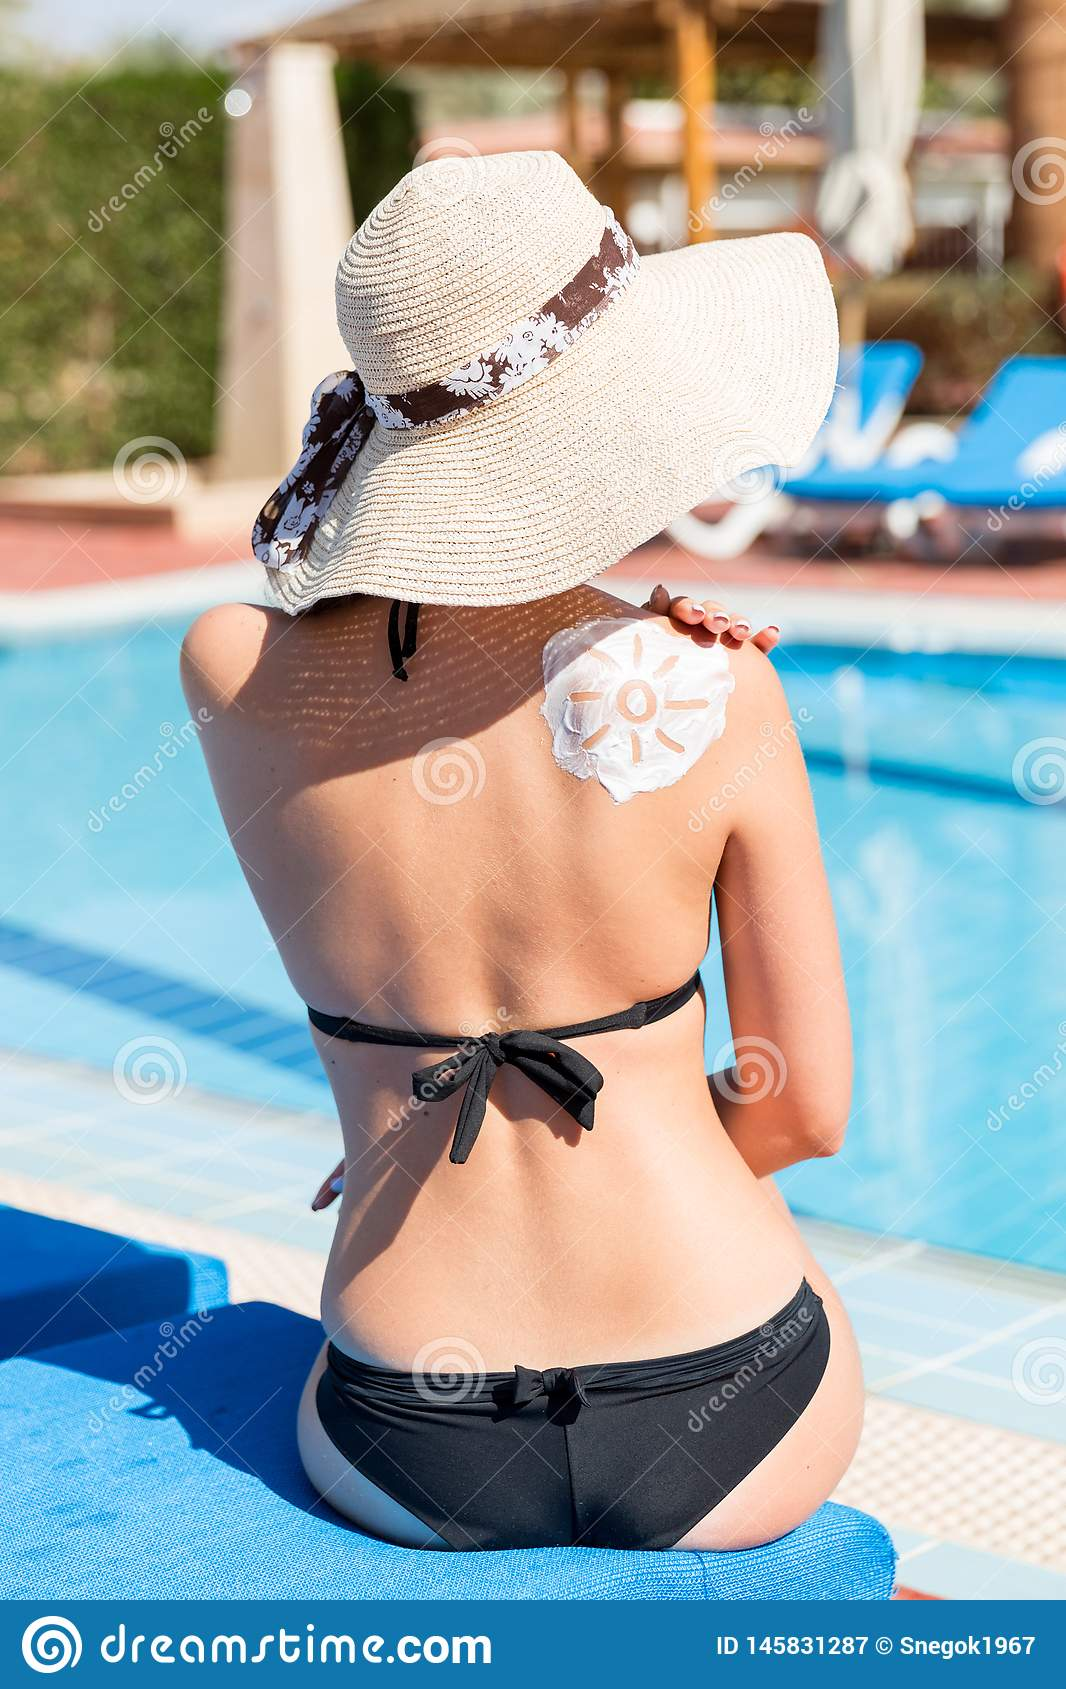 Beautiful woman with drawn sun by sun cream on her shoulder by the pool. Sun Protection Factor in vacation, concept